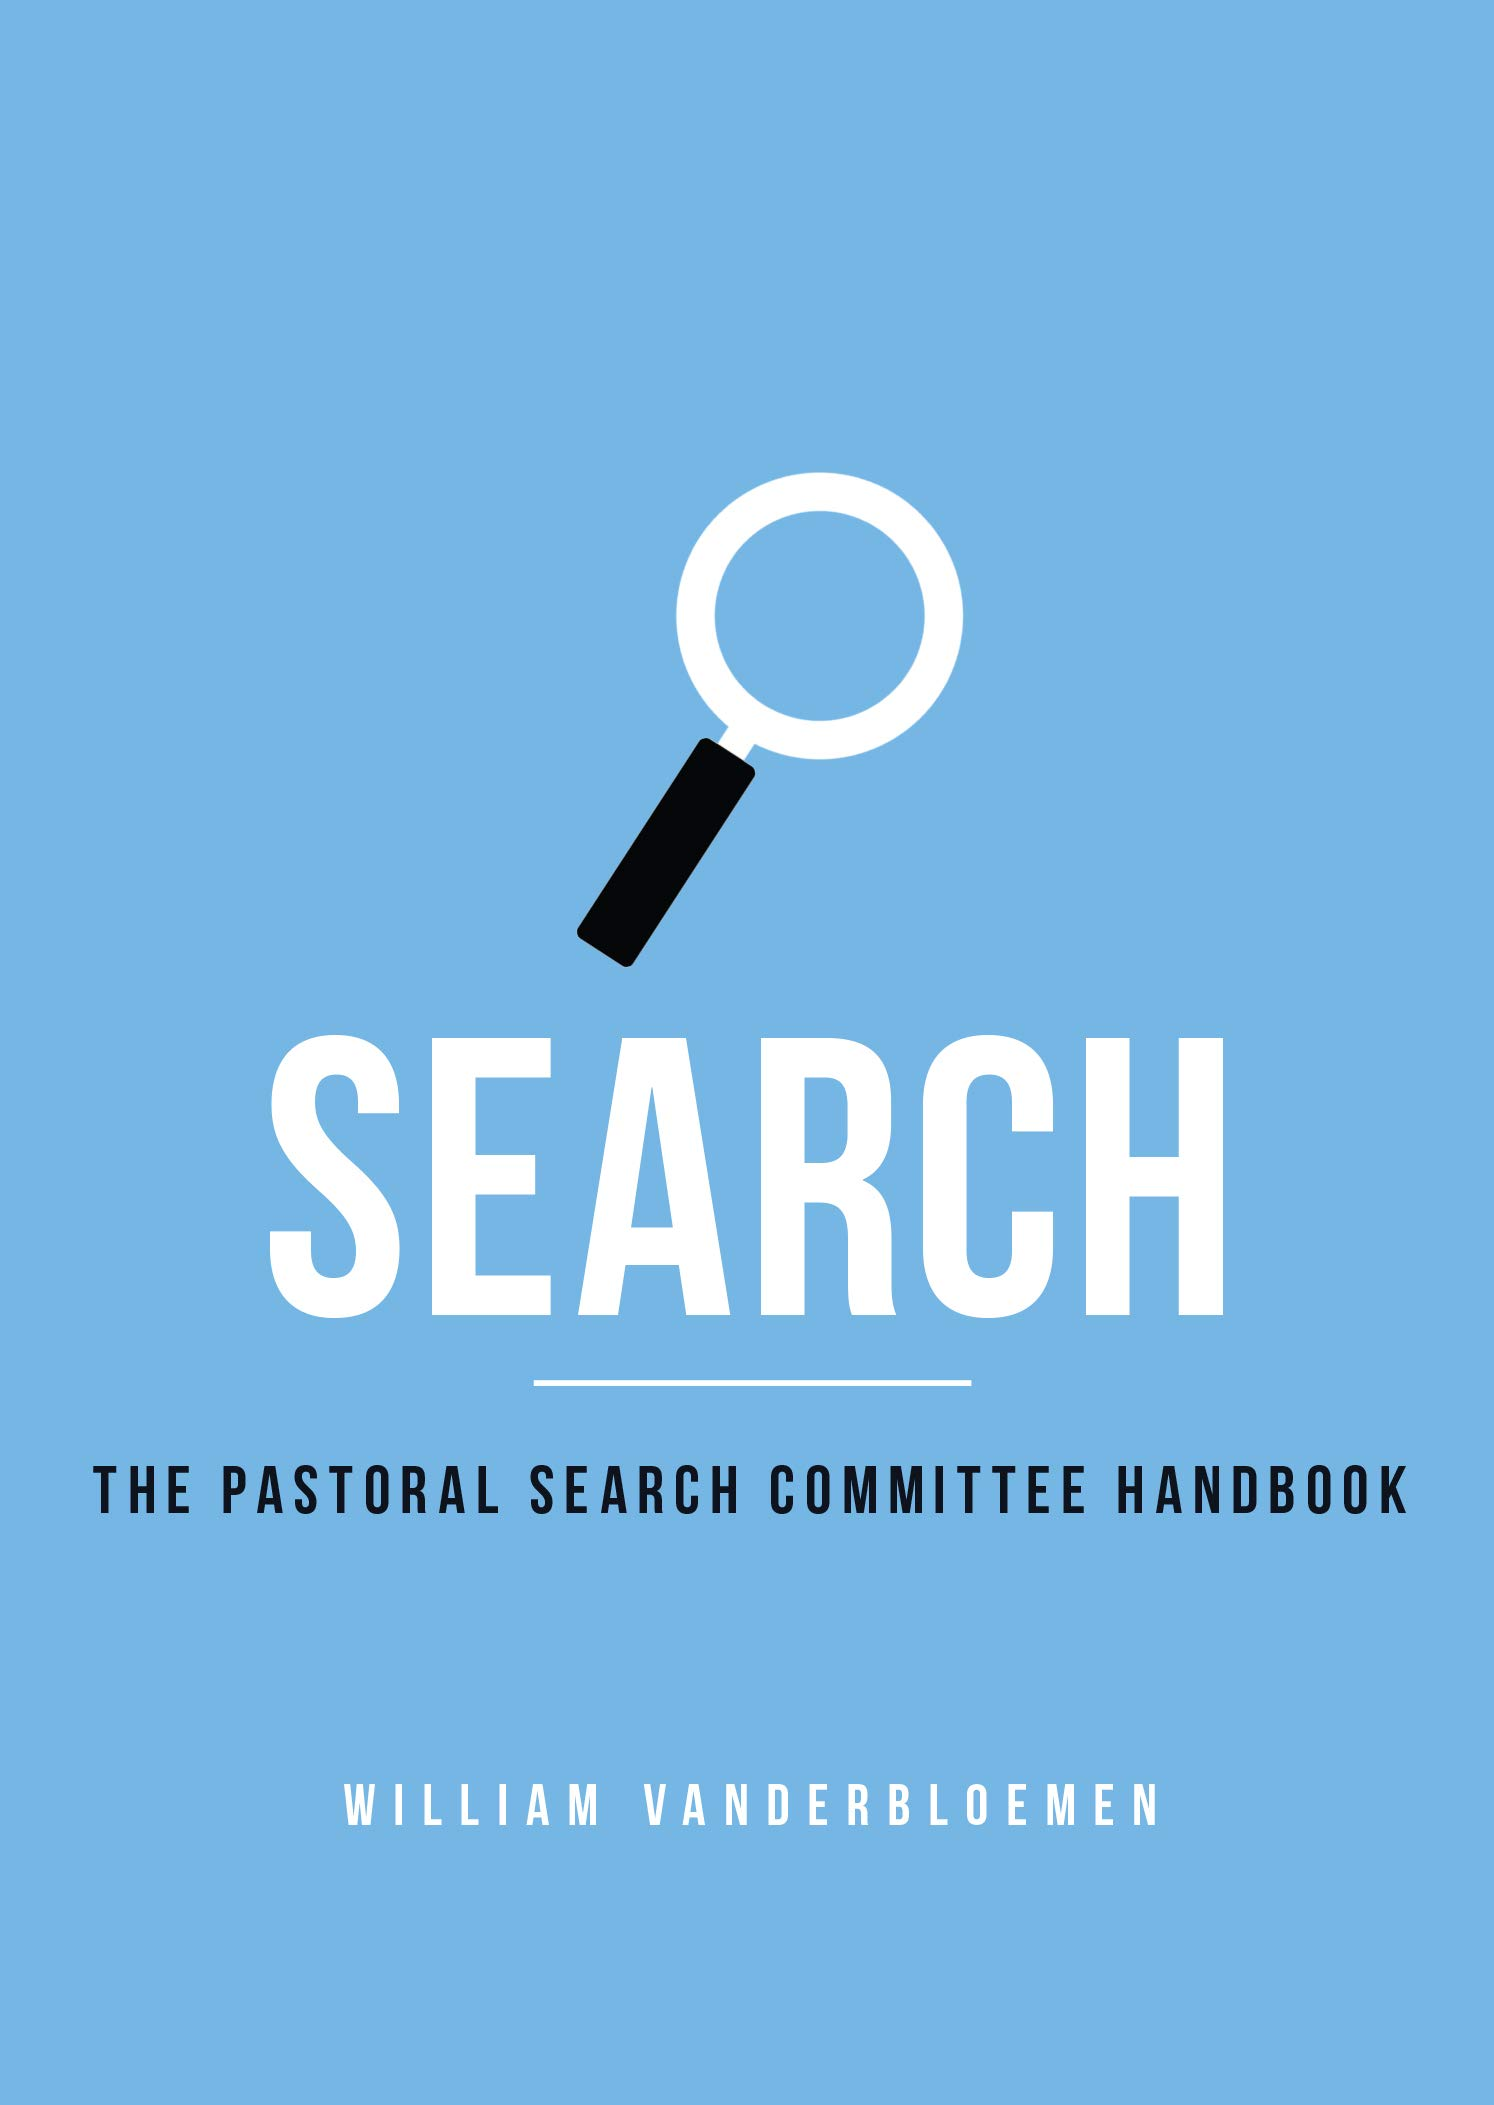 Search: The Pastoral Search Committee Handbook: William